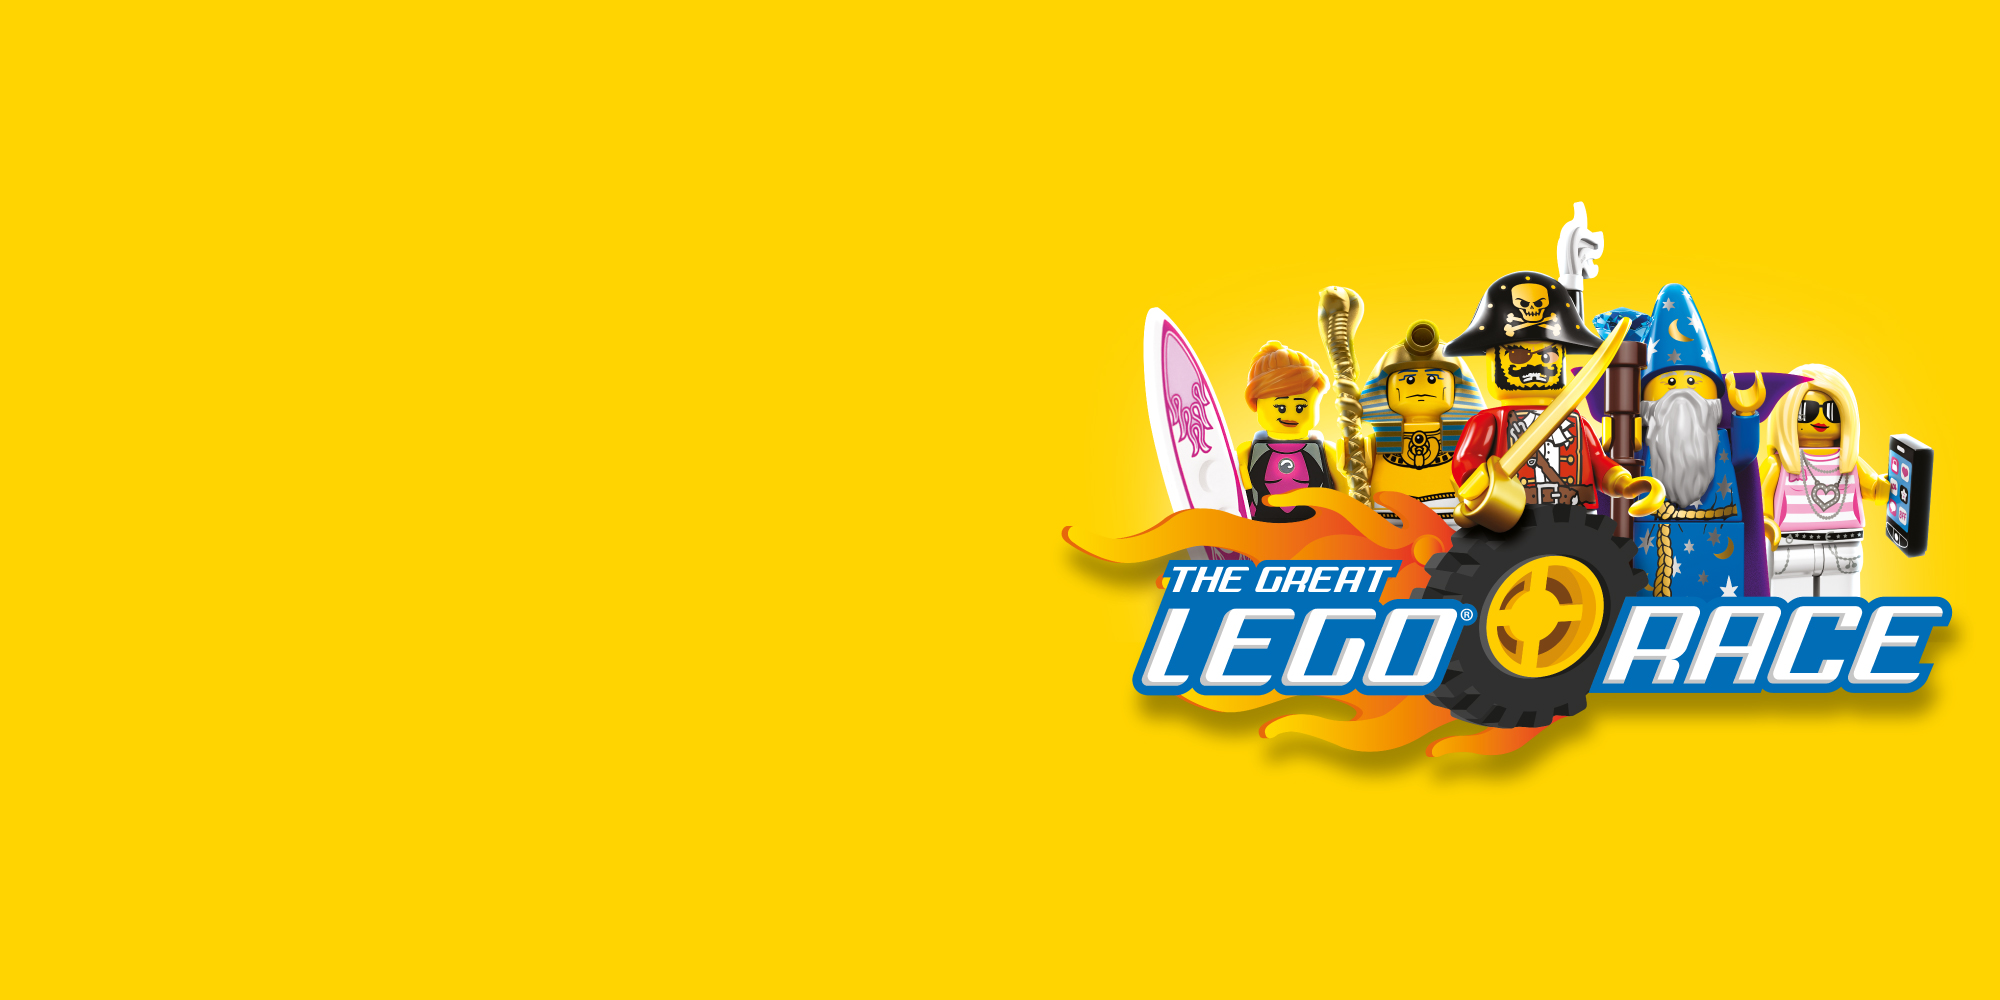 Experience The Great LEGO VR Race at LEGOLAND Discovery Center